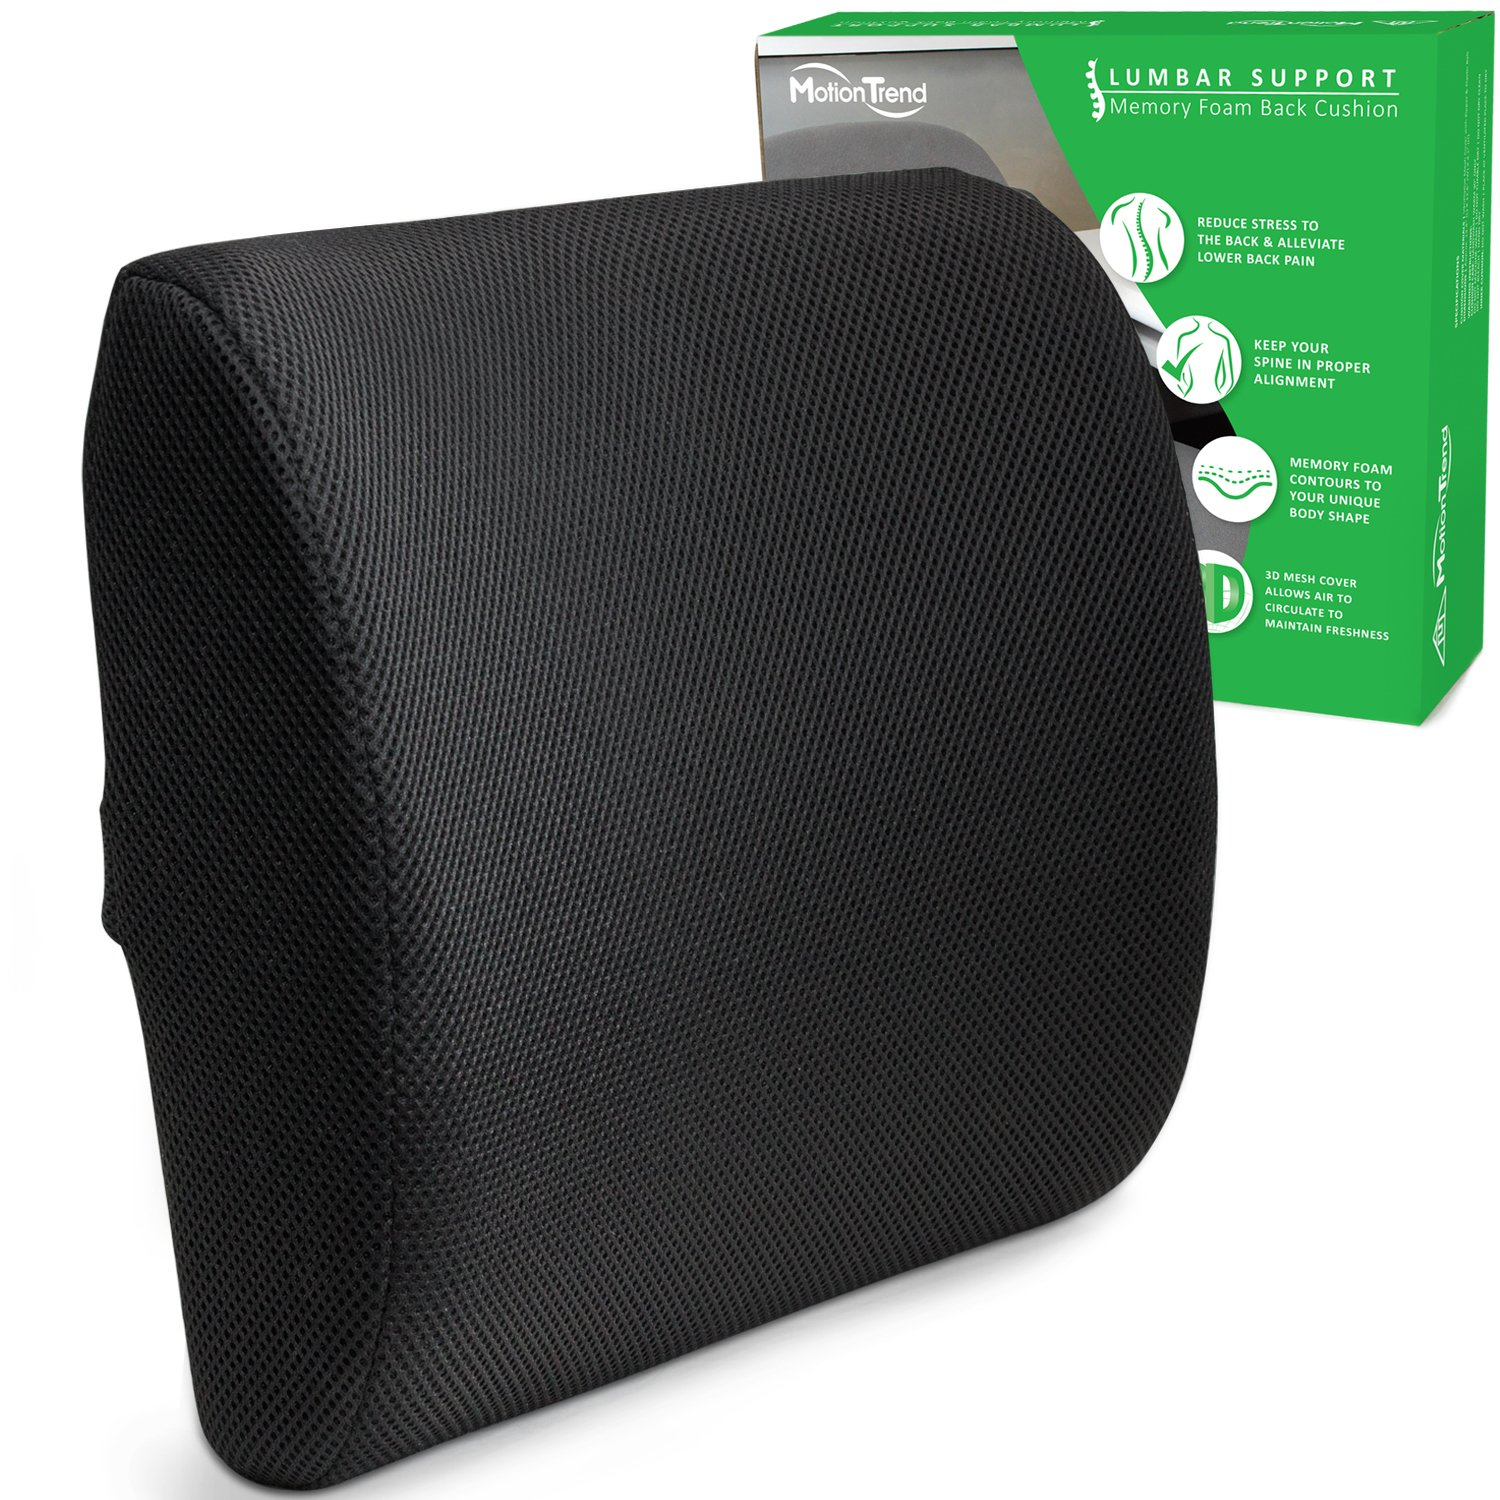 Magic Back Support Lumbar Support Cushion & Pillow For Office Chair & Car